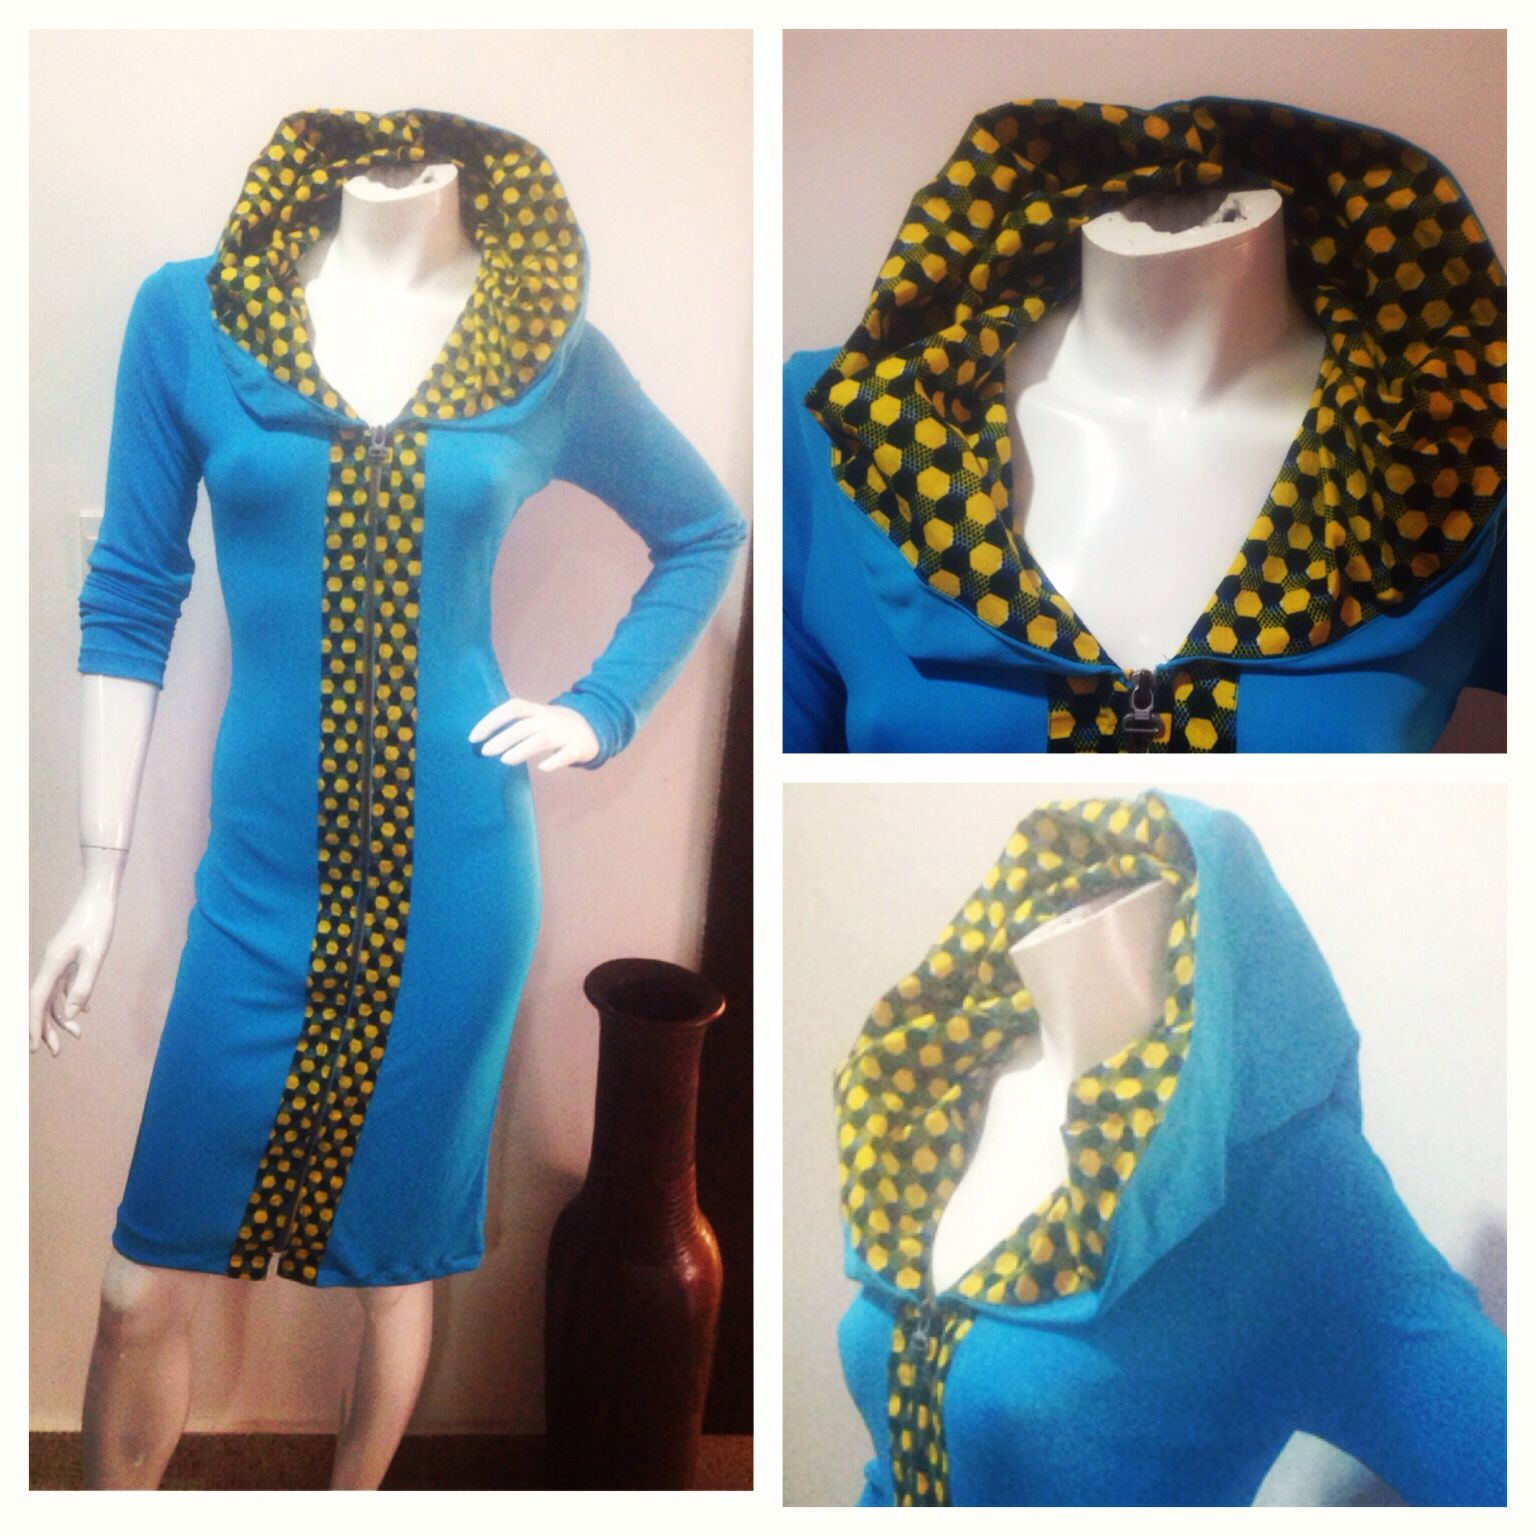 Hooded jersey n ankara (african print) dress